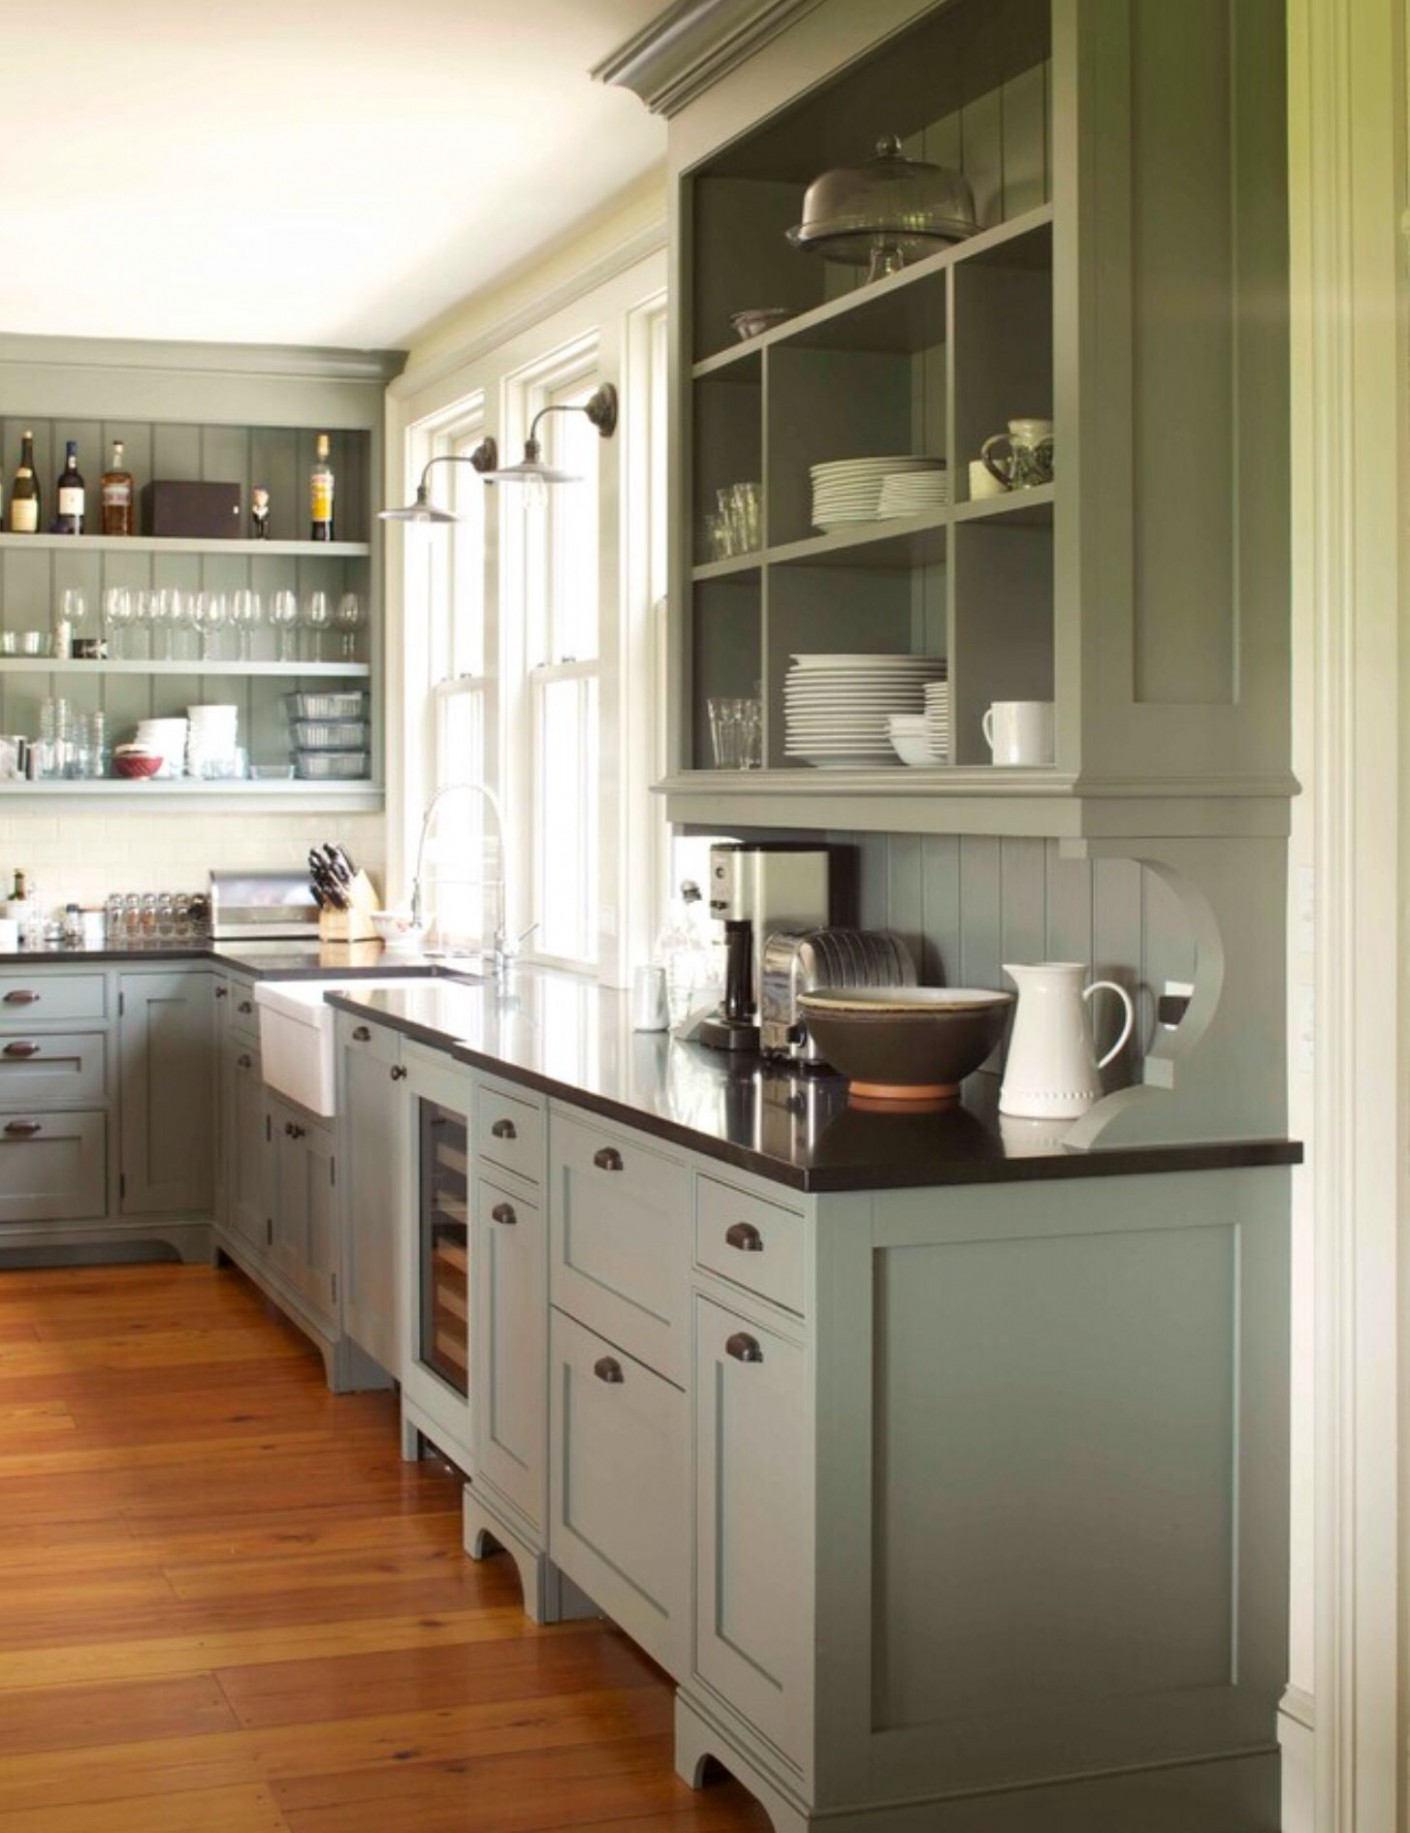 Pin by Jenny Zanatta on 8 - Kitchen  Farmhouse kitchen design  - 1950S Kitchen Cabinets Corbel